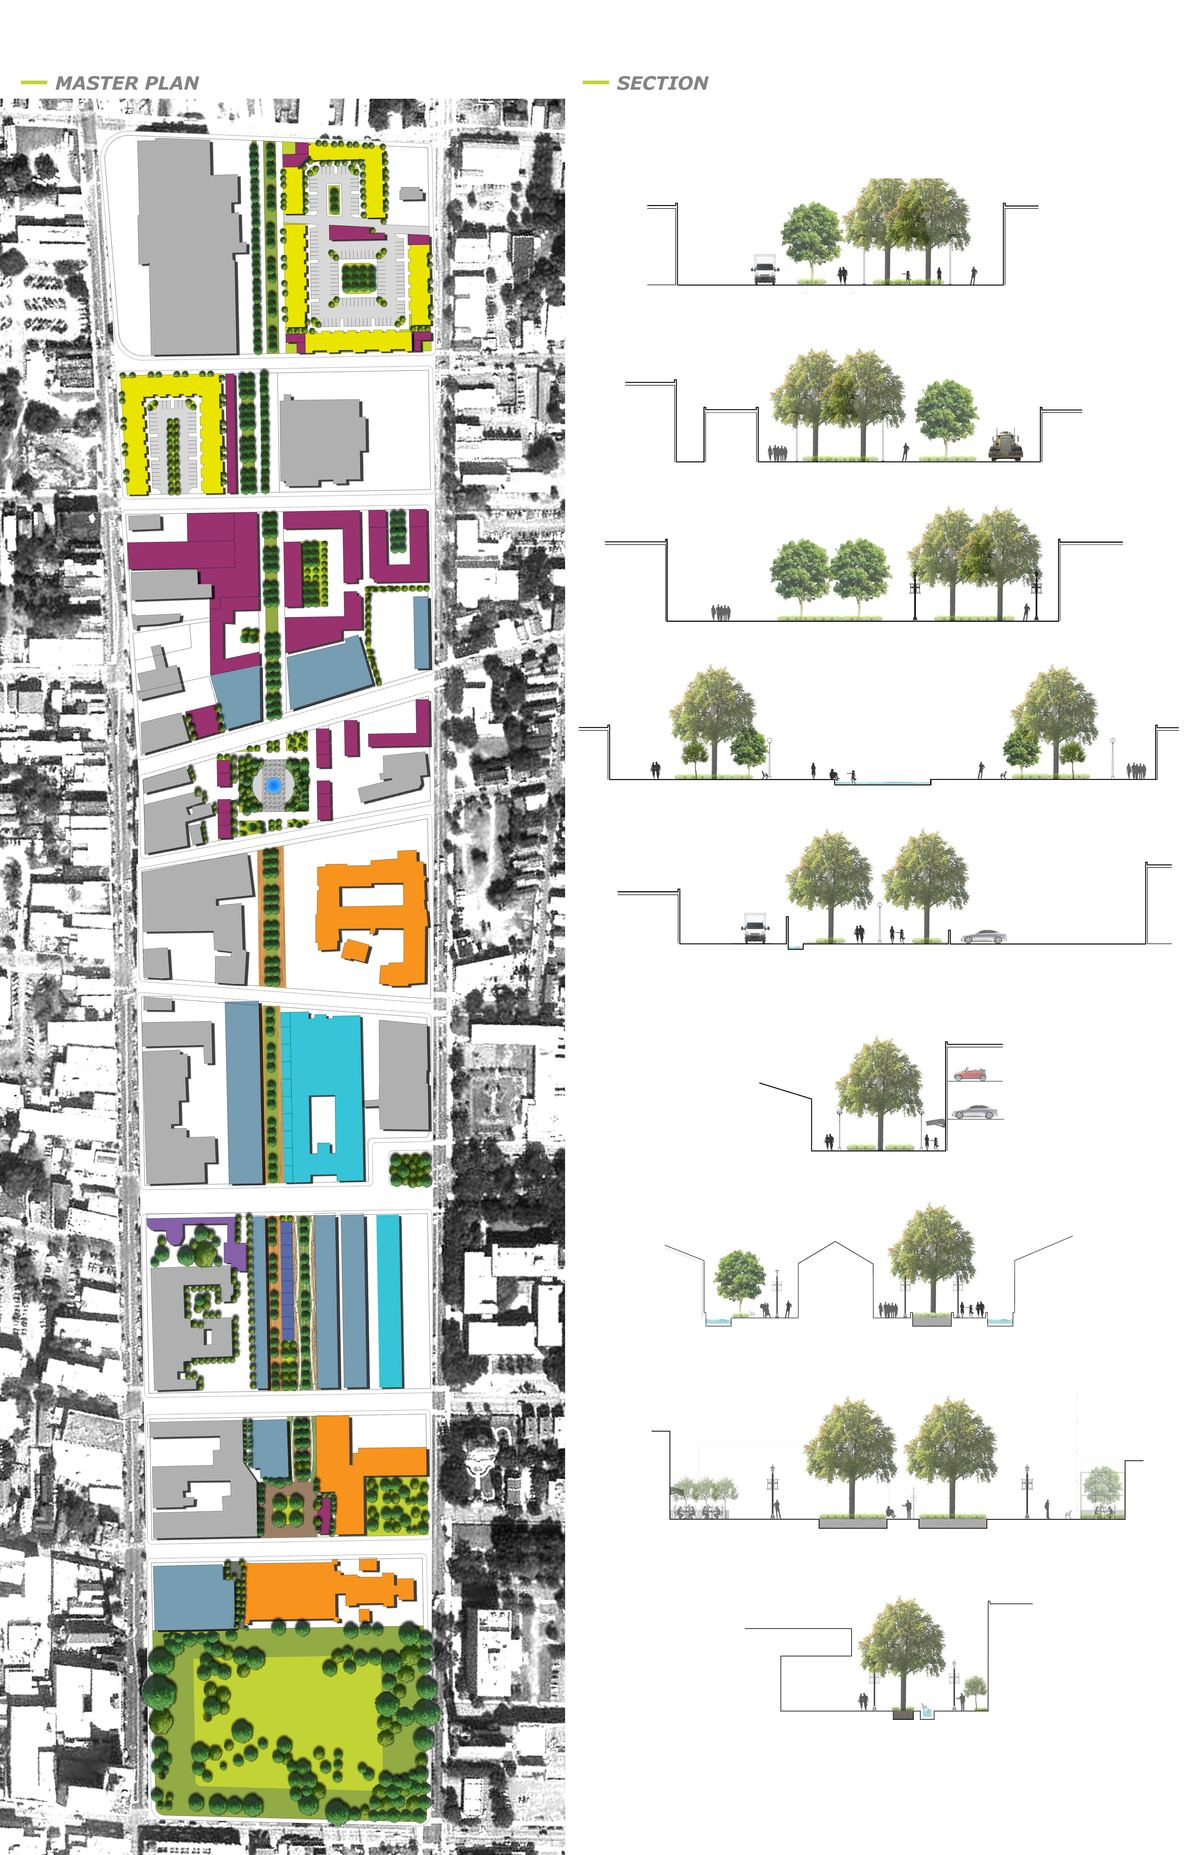 Sustainable urban corridor block pattern and Green plans